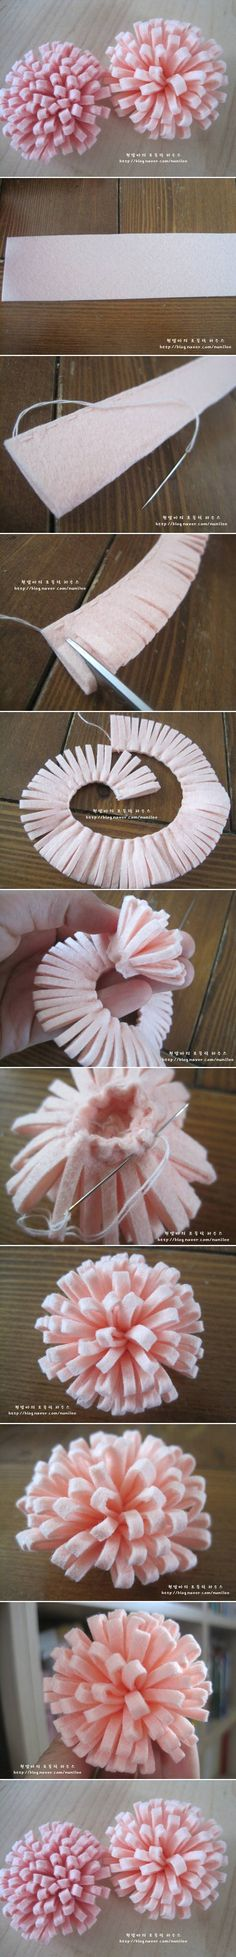 DIY Simple Easy Felt Flower DIY Projects